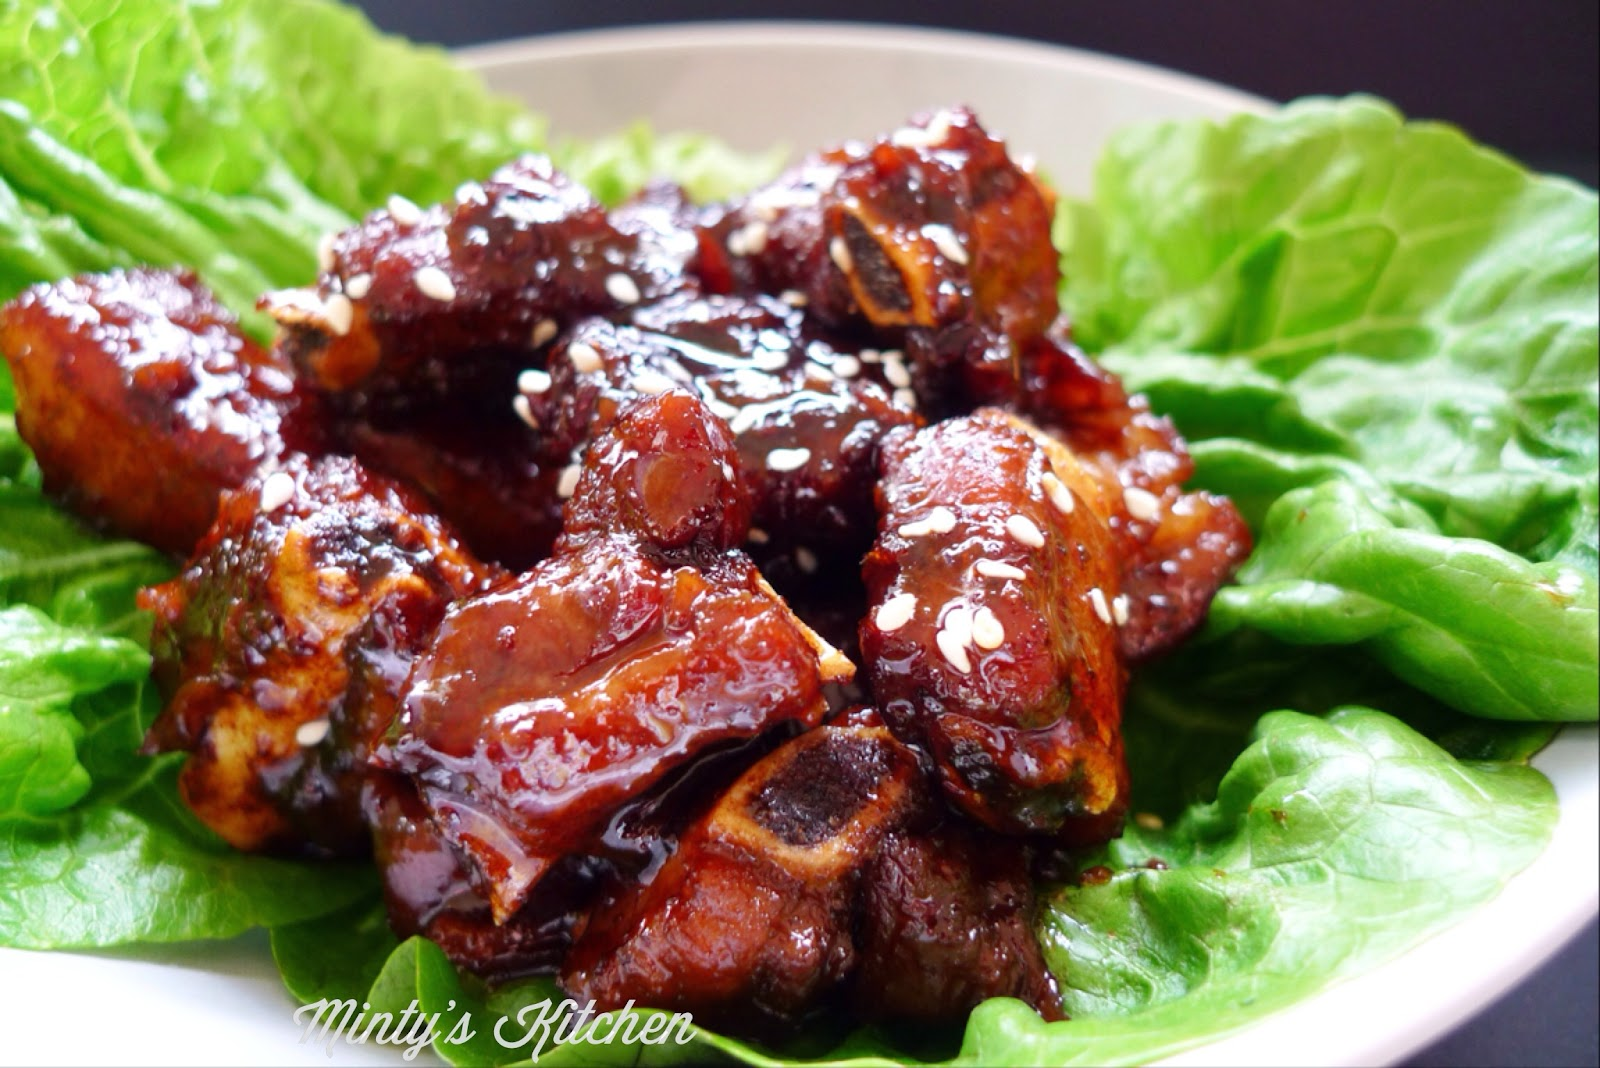 Braised Sweet & Sour Chinkiang Vinegar Spare Ribs (浙江糖醋排骨)